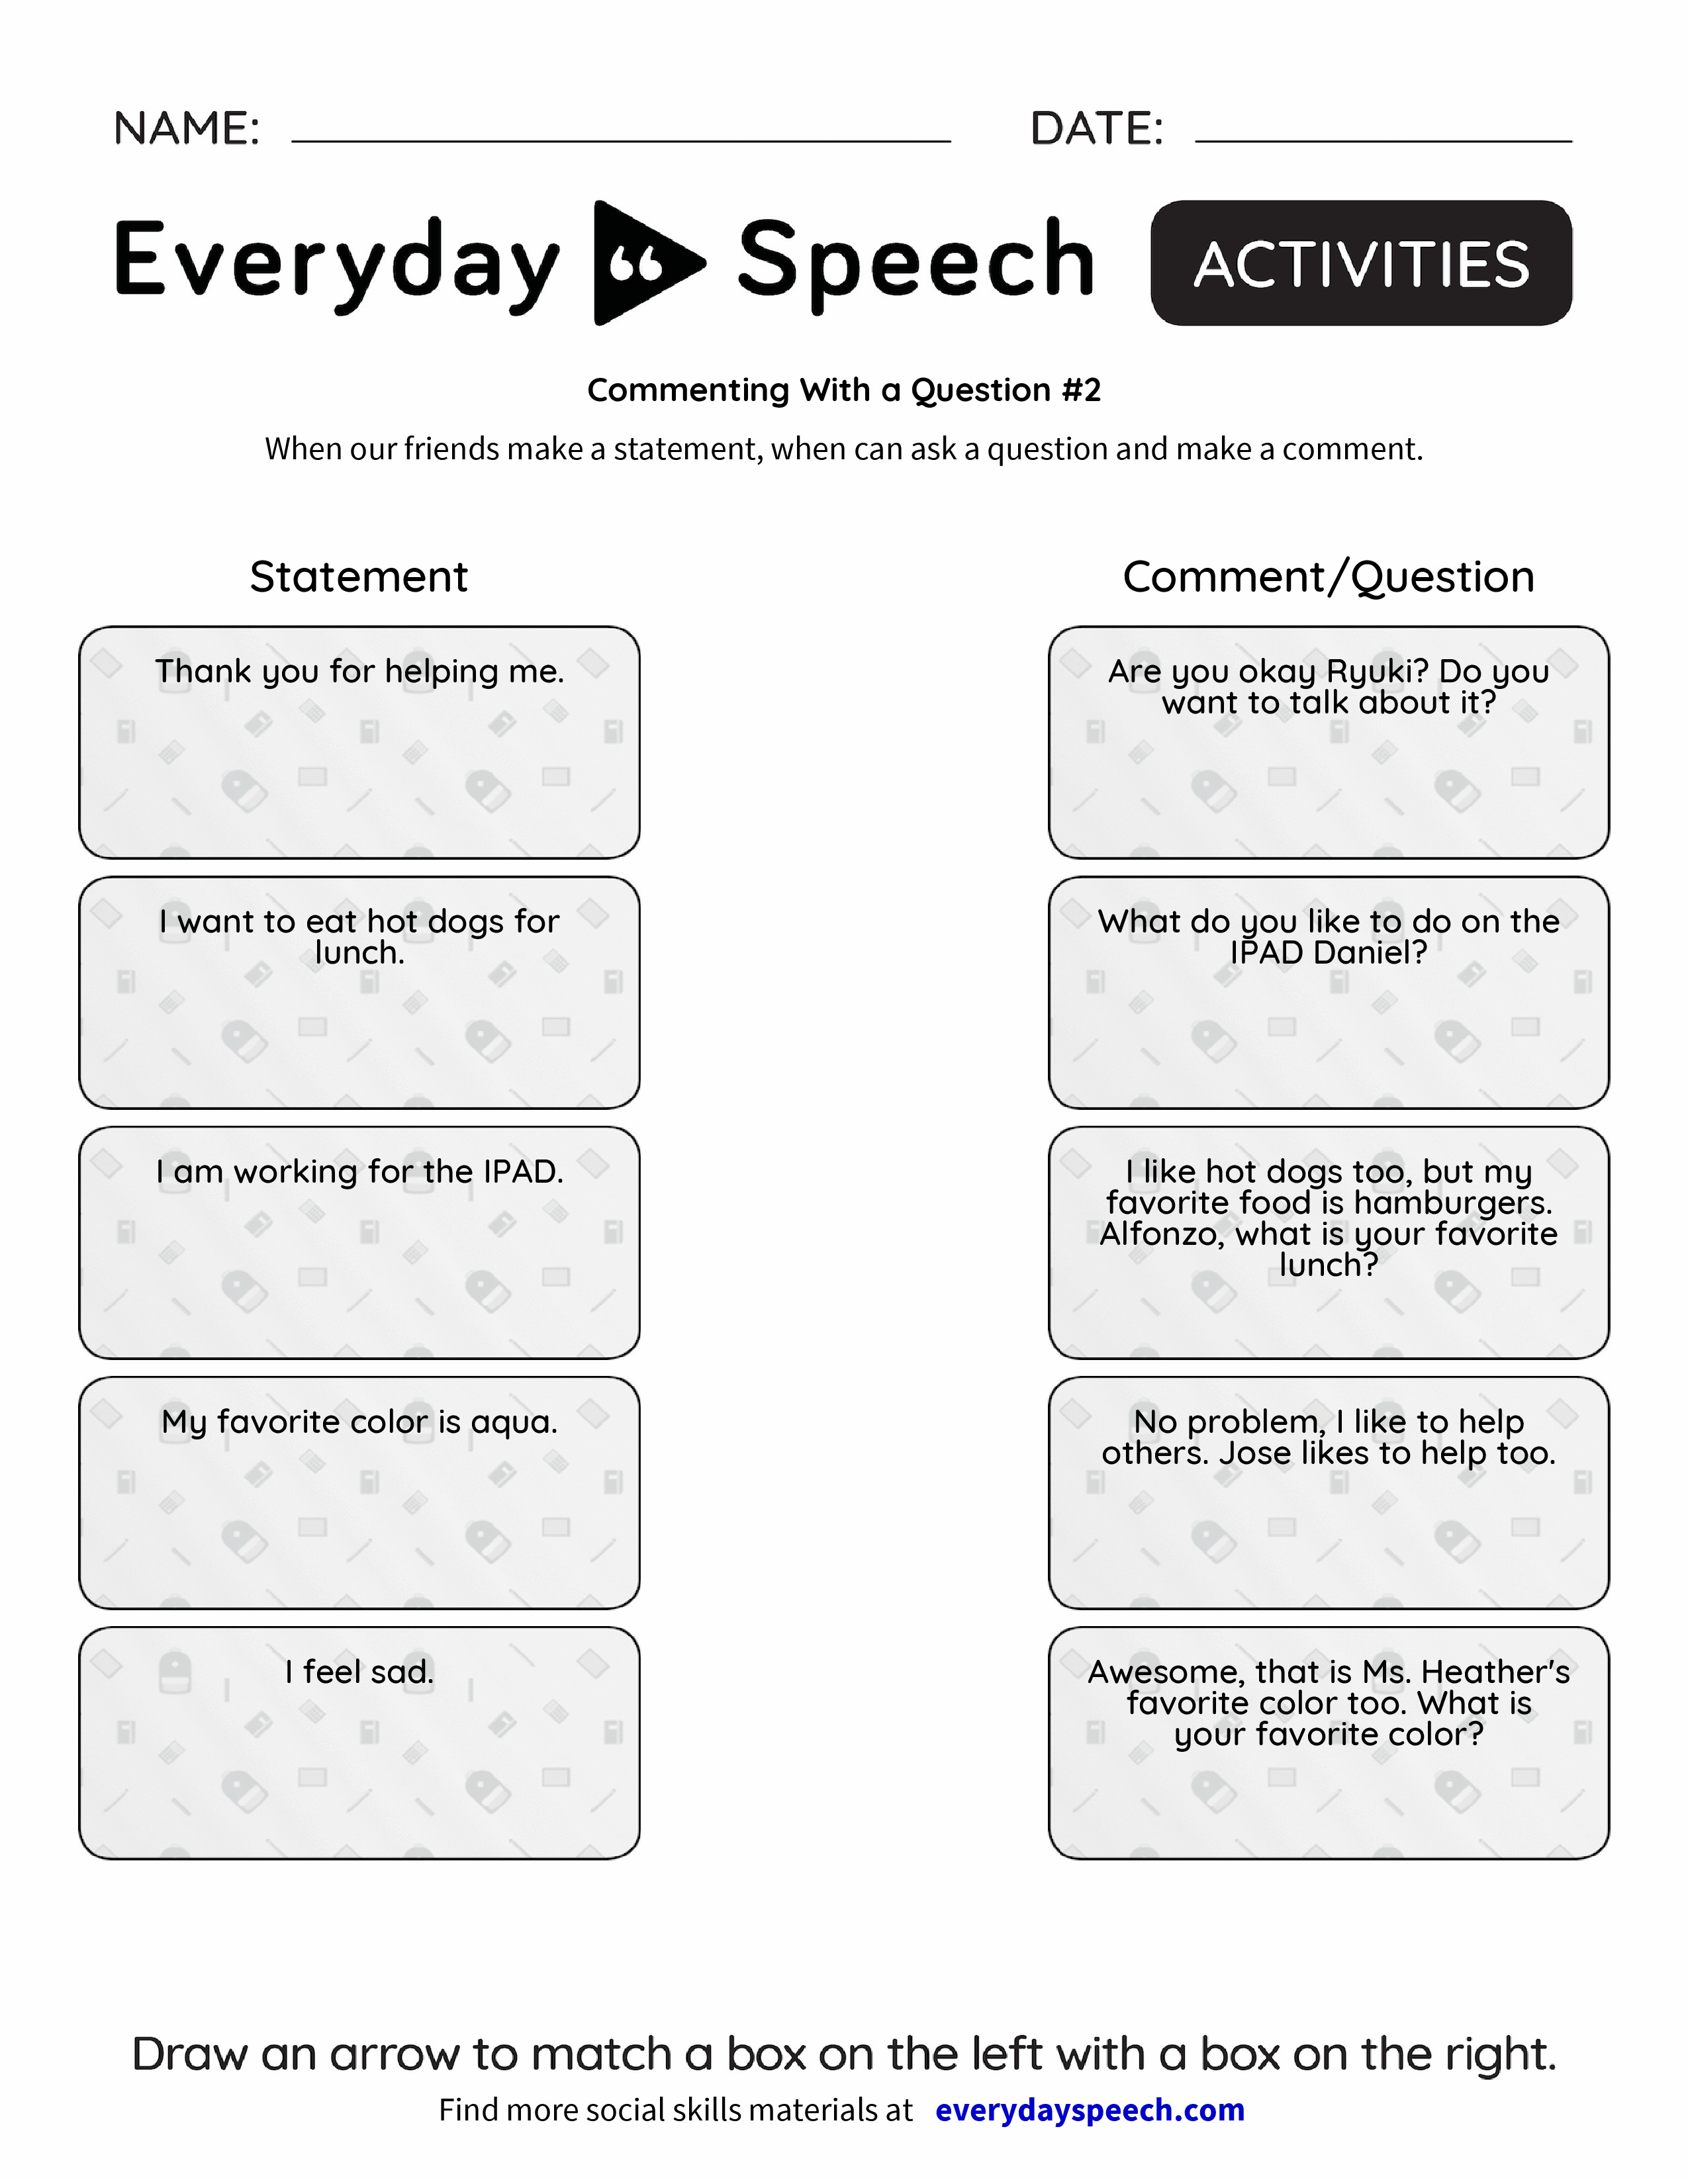 Commenting With A Question 2 Everyday Speech Everyday Speech